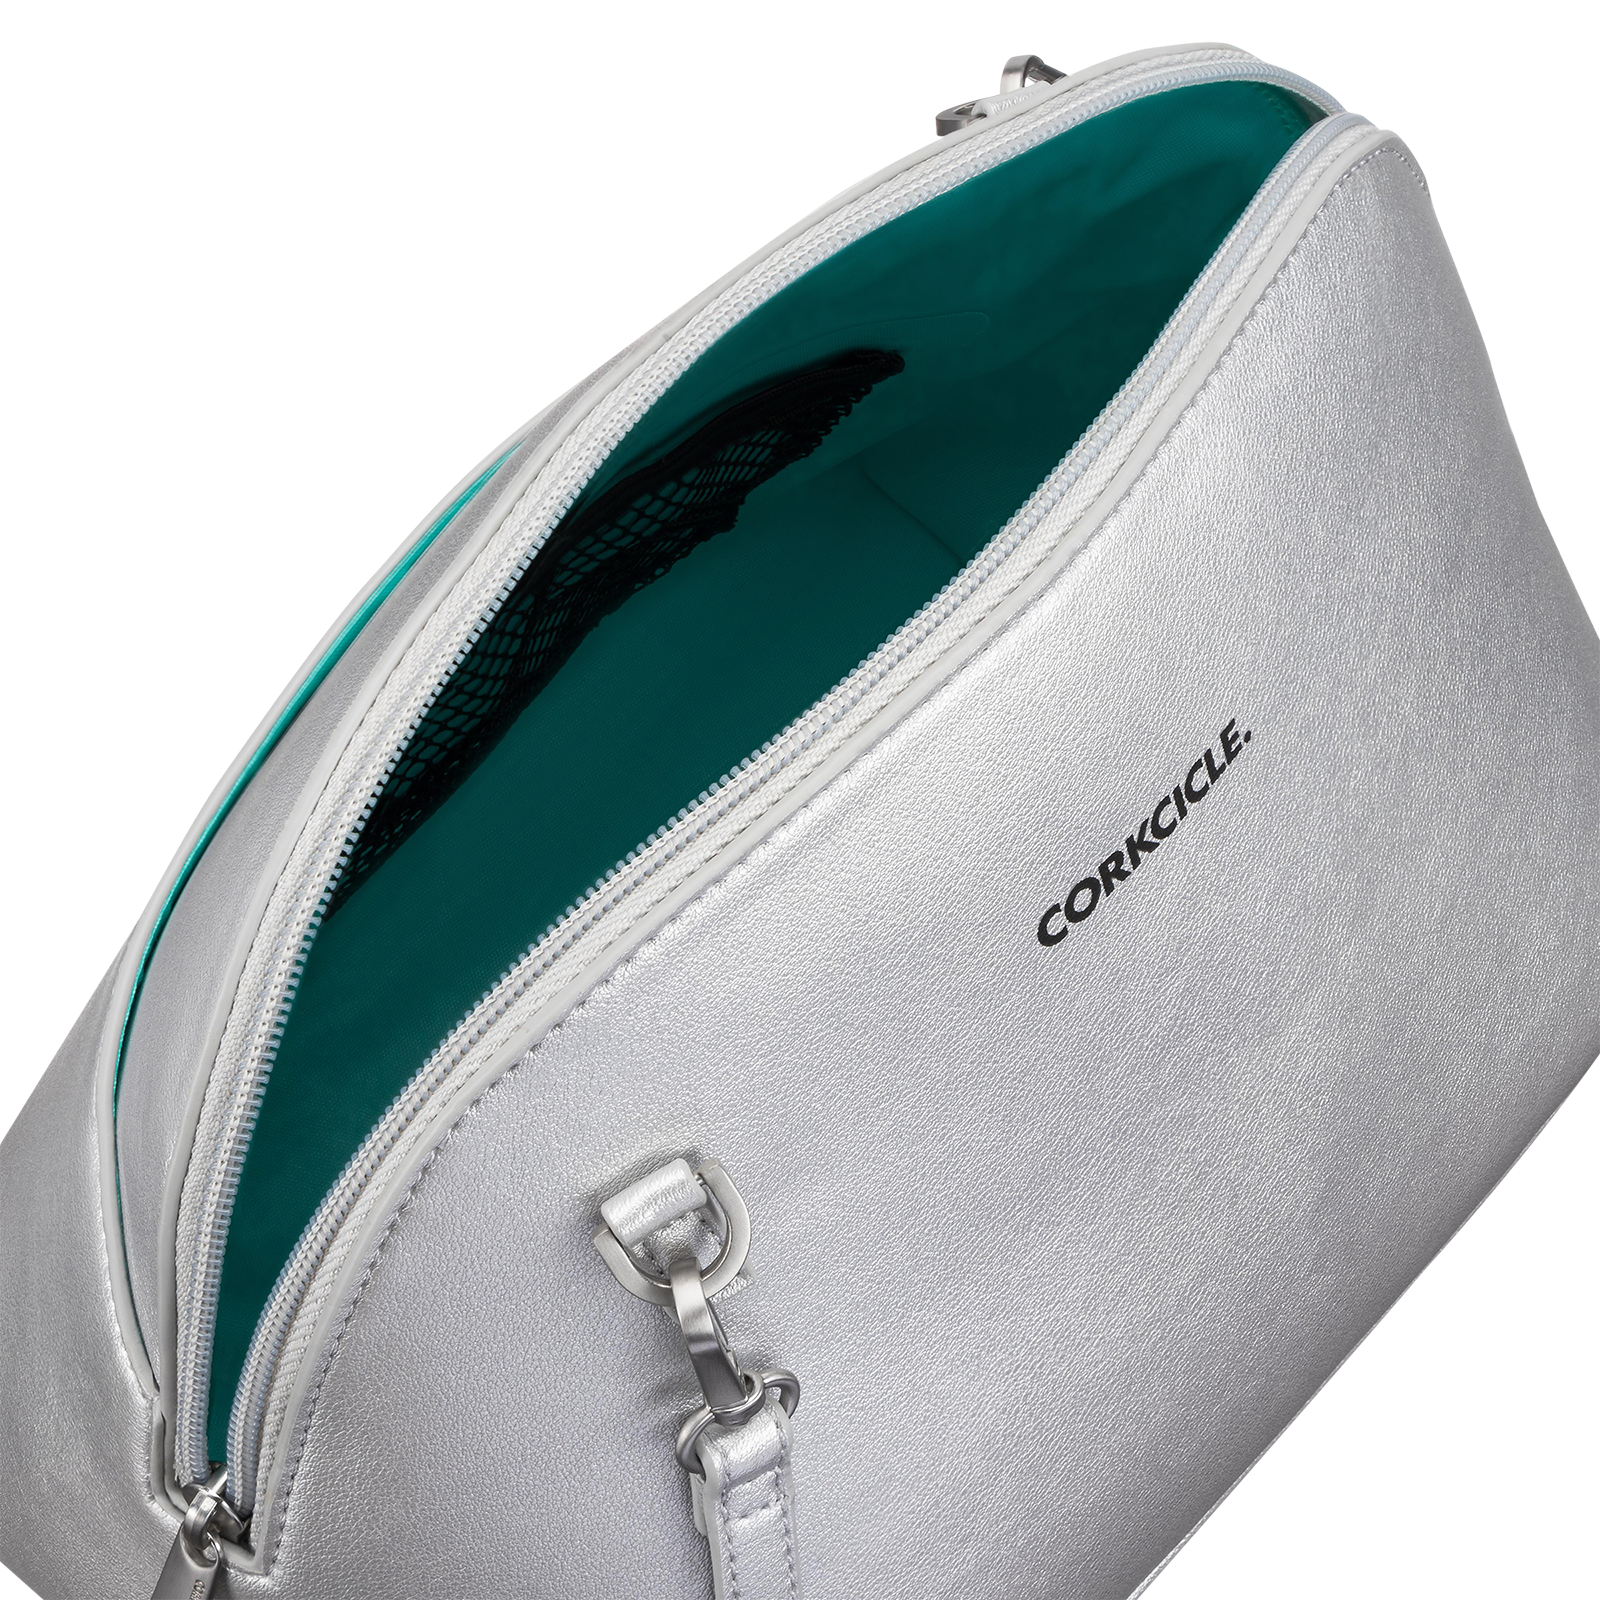 Silver bag product photography